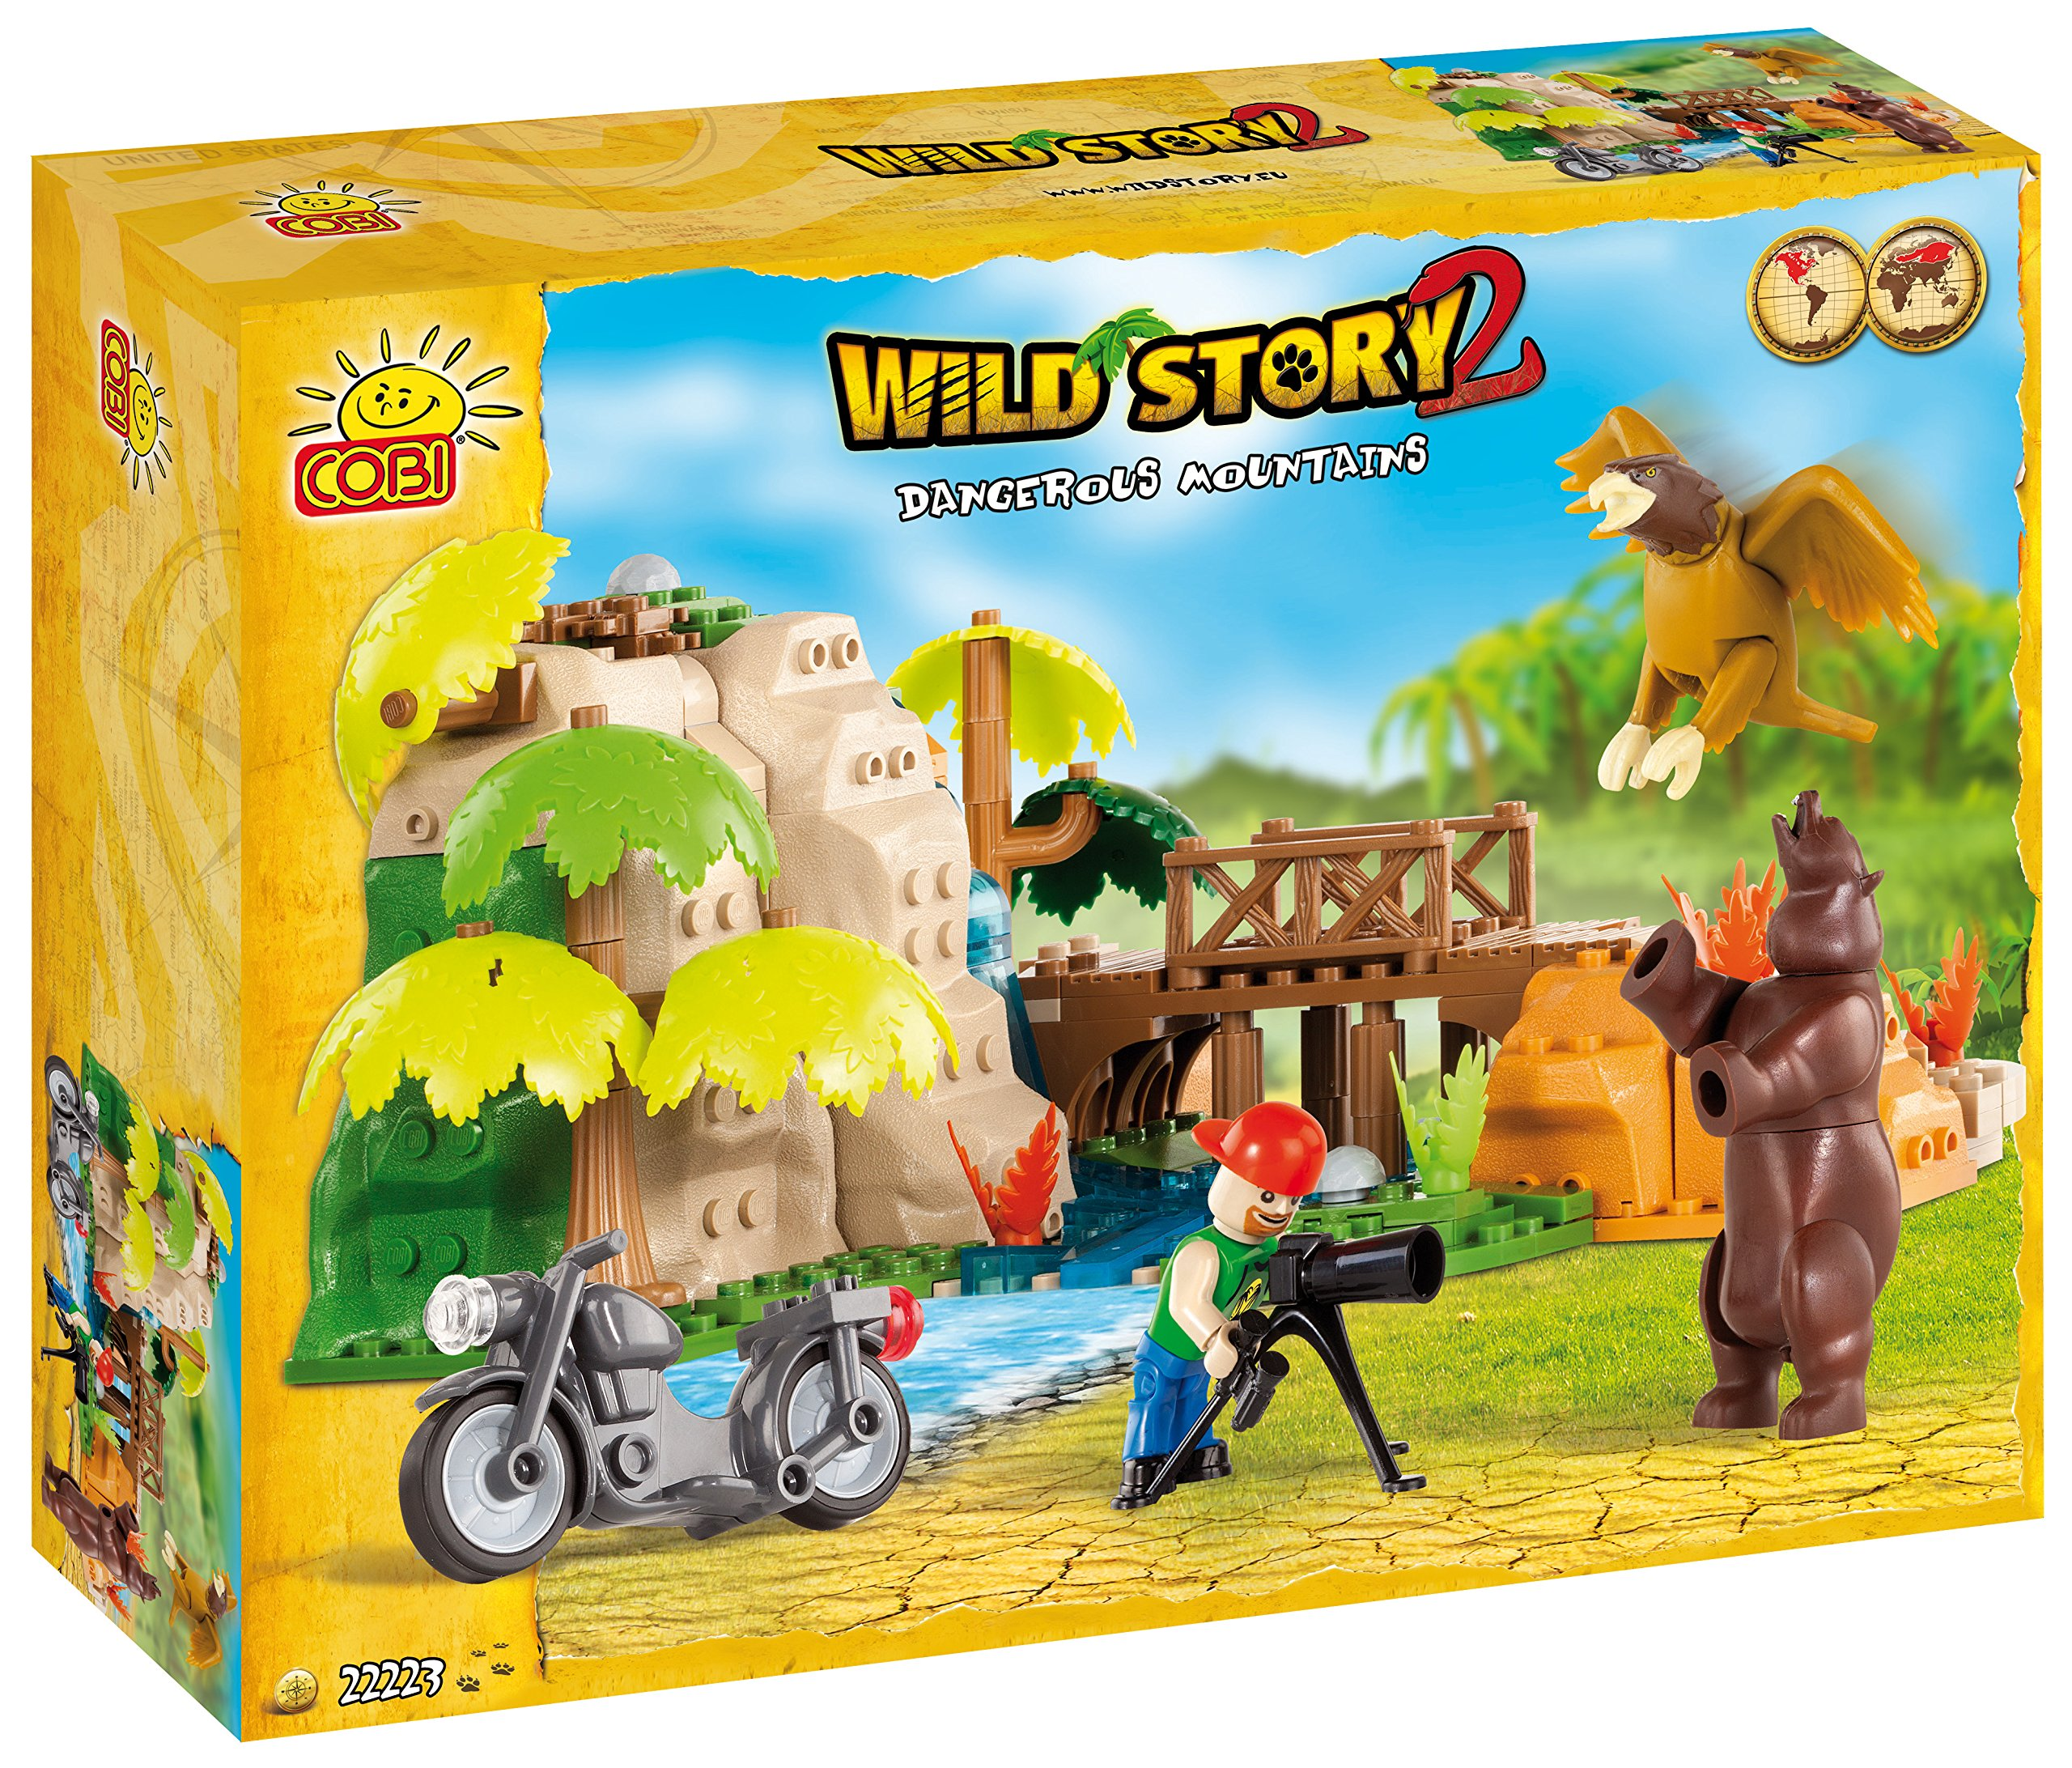 Cobi Wild Story - Dangerous Mountains